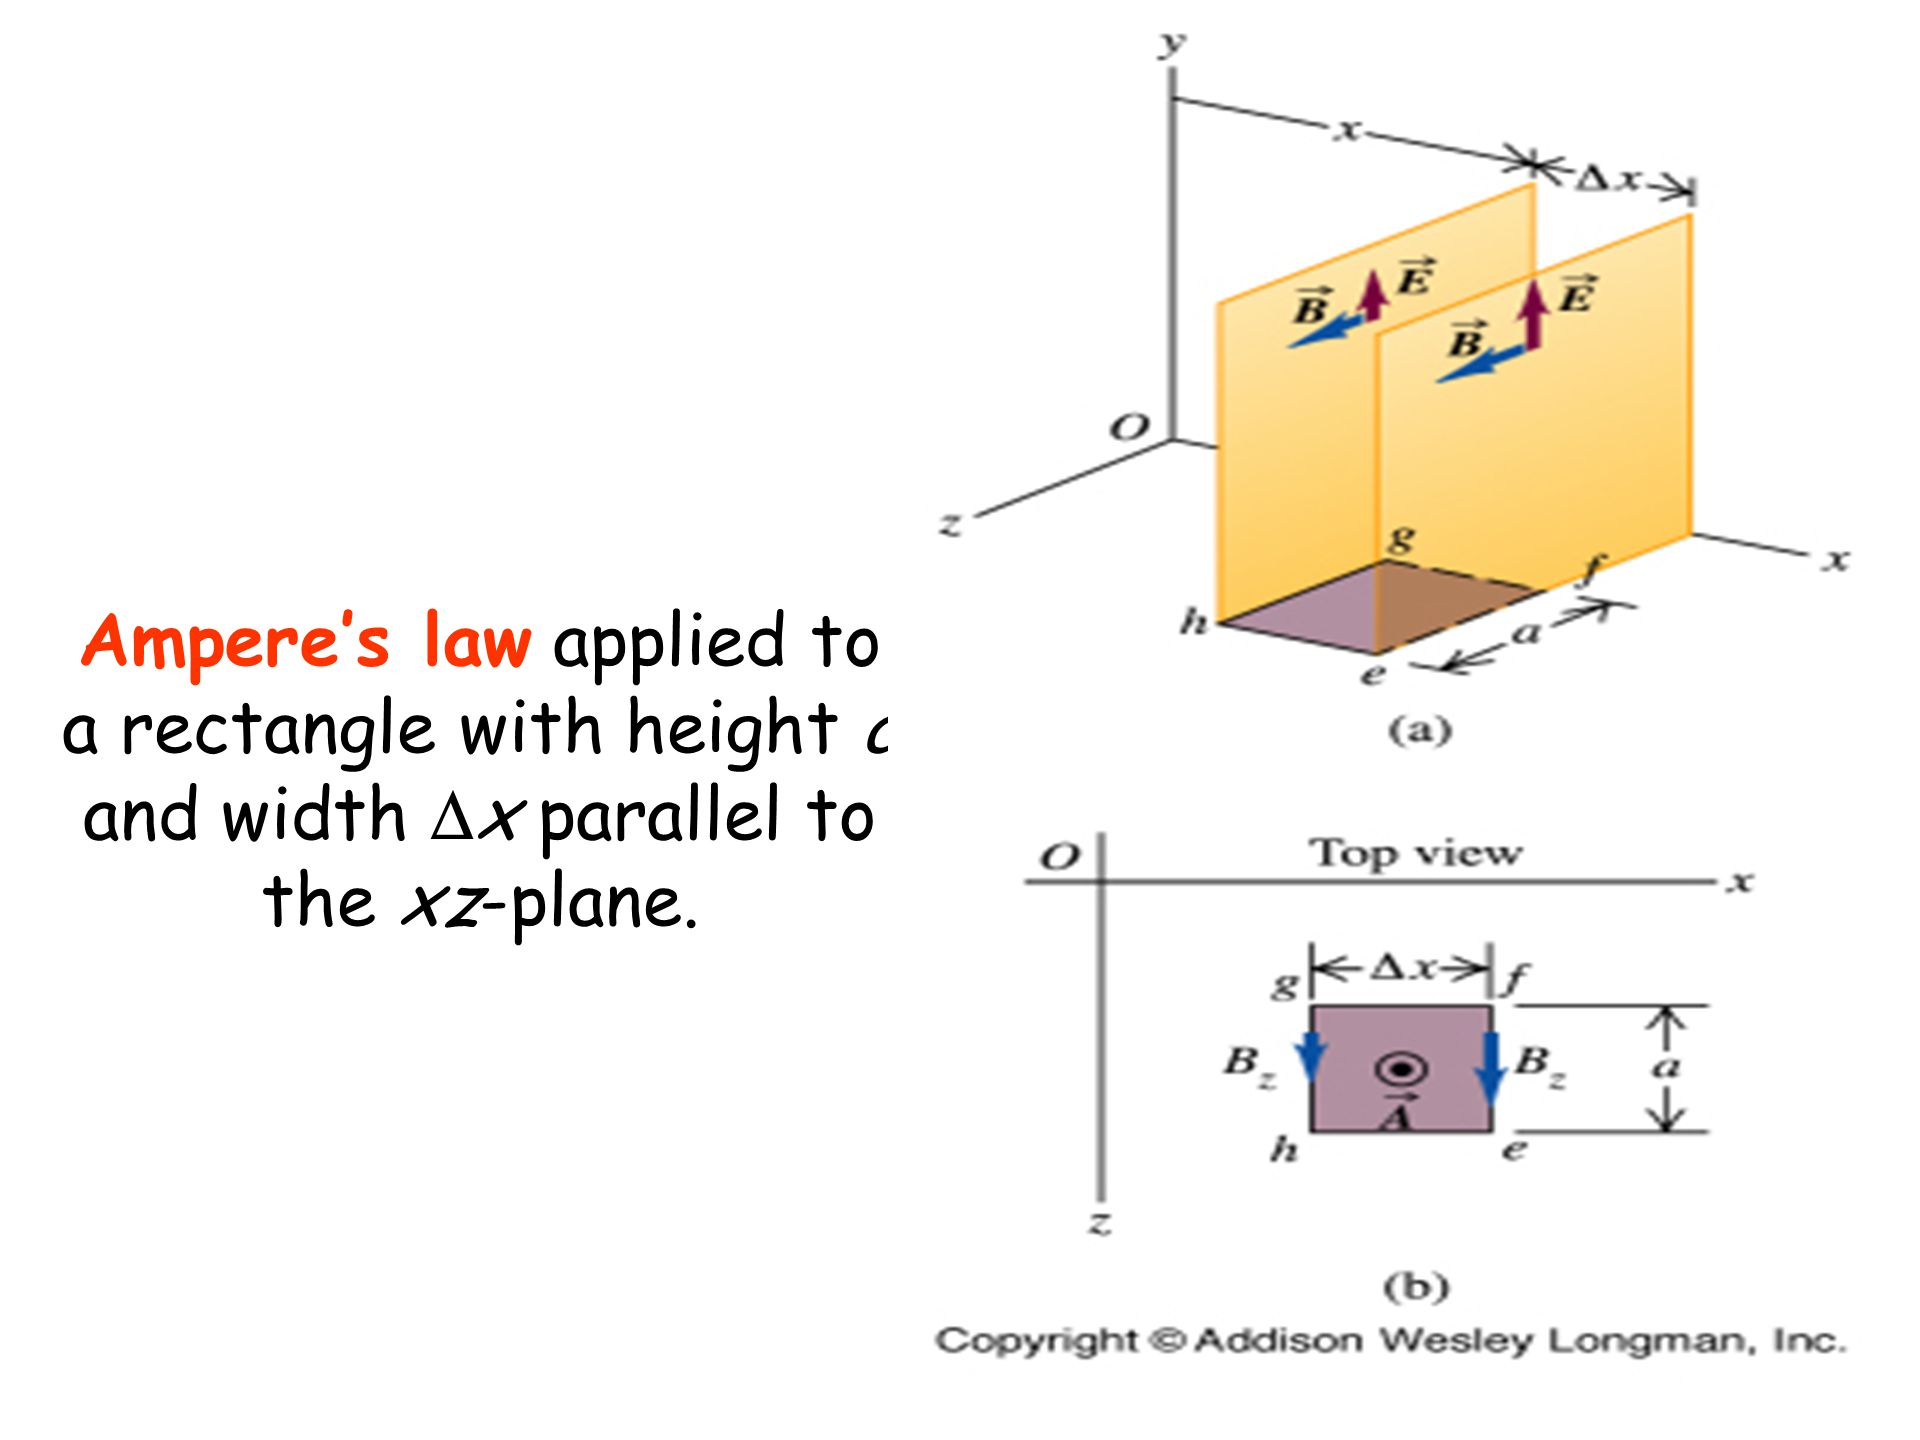 Ampere's law applied to a rectangle with height a and width  x parallel to the xz-plane.